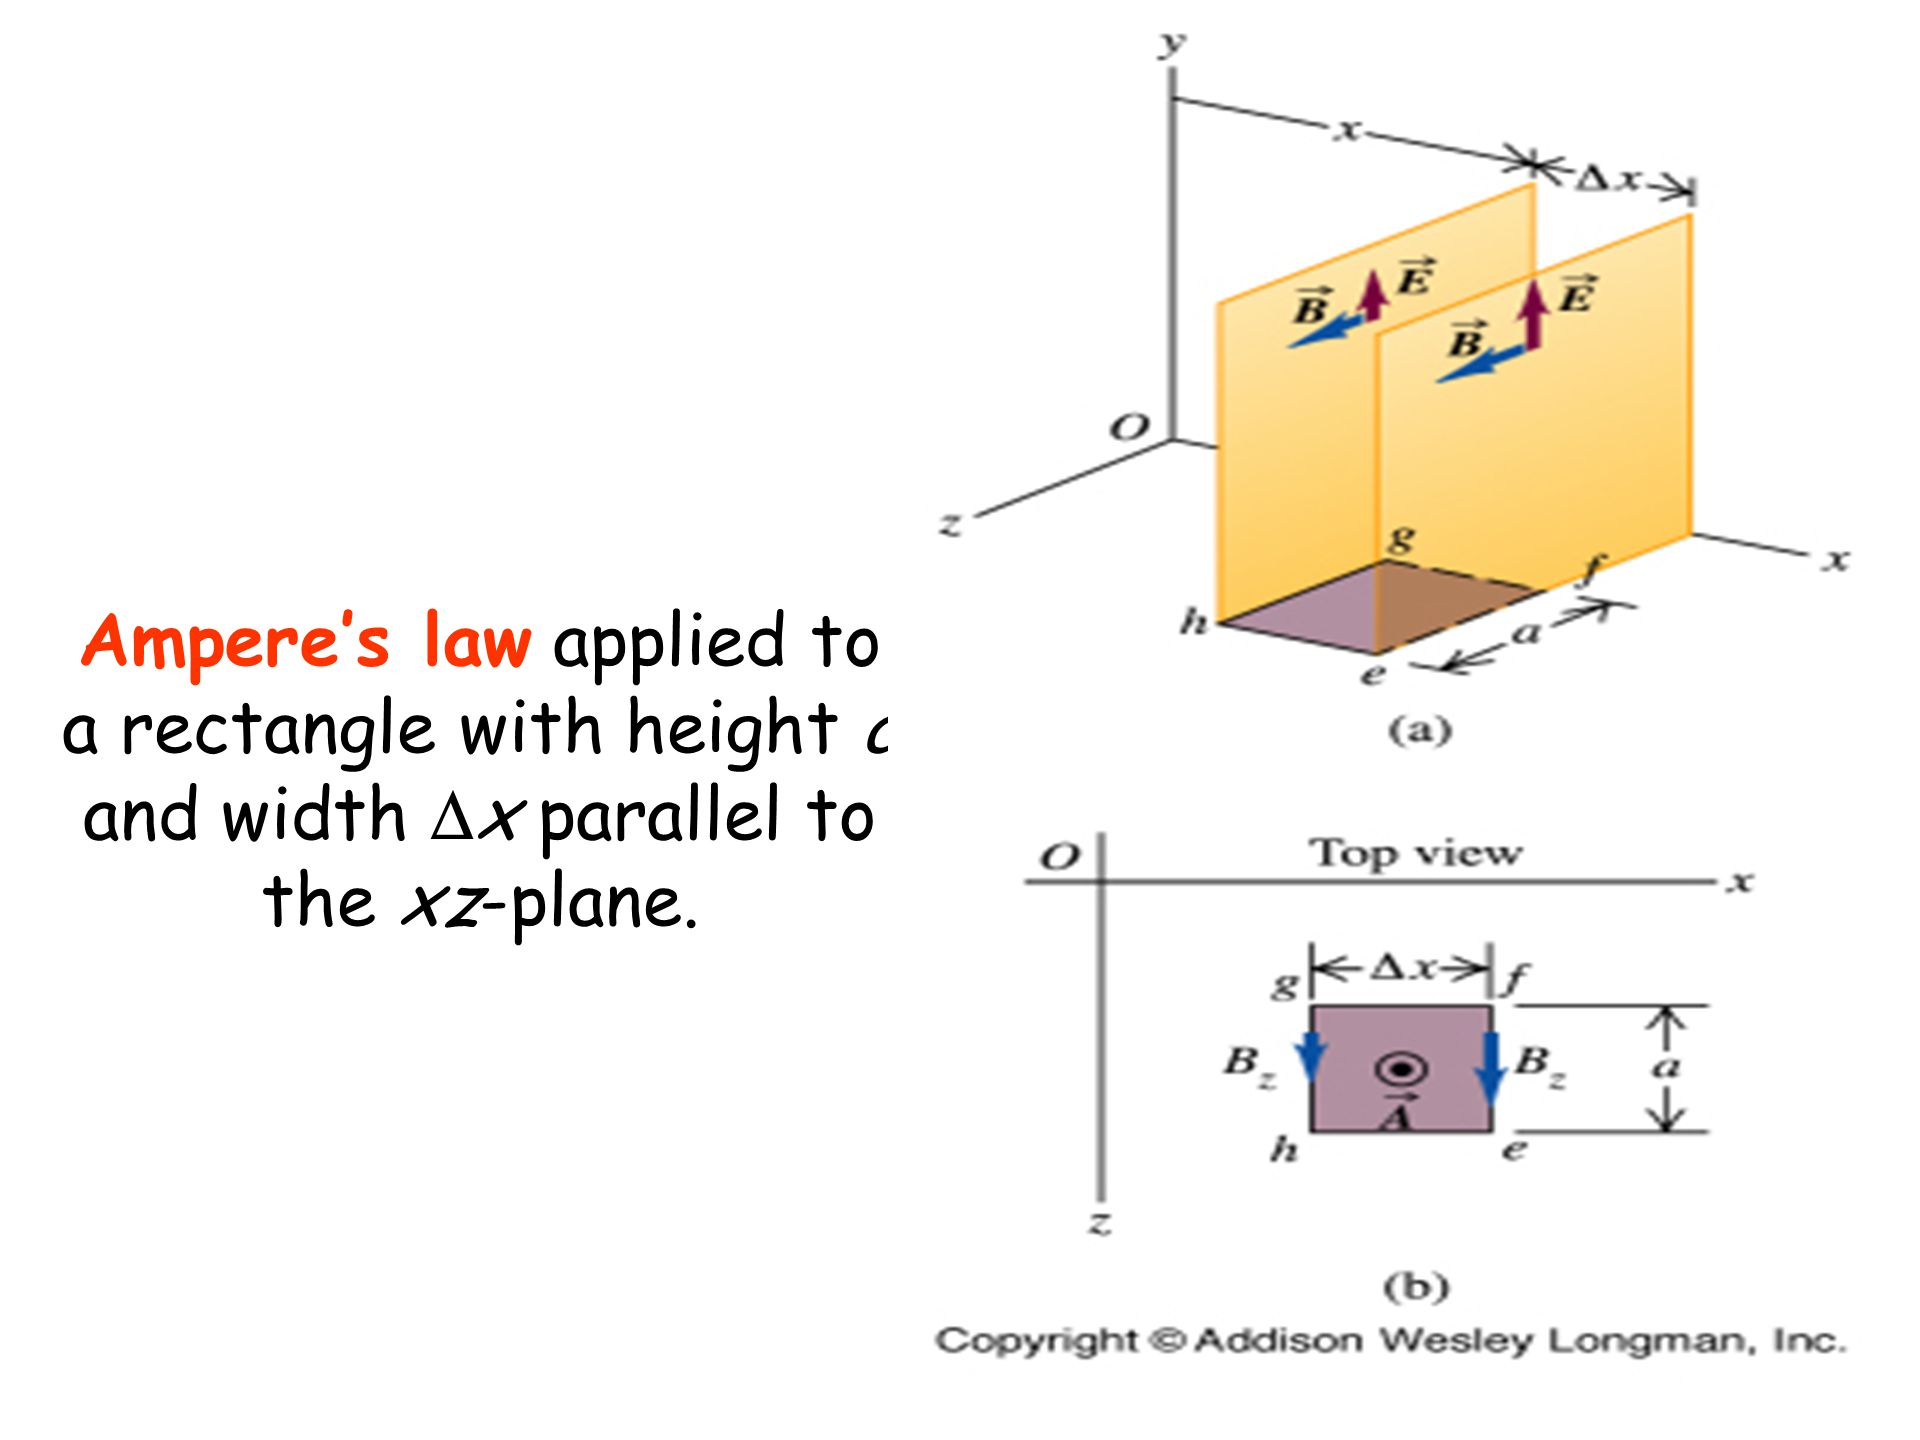 Ampere's law applied to a rectangle with height a and width  x parallel to the xz-plane.